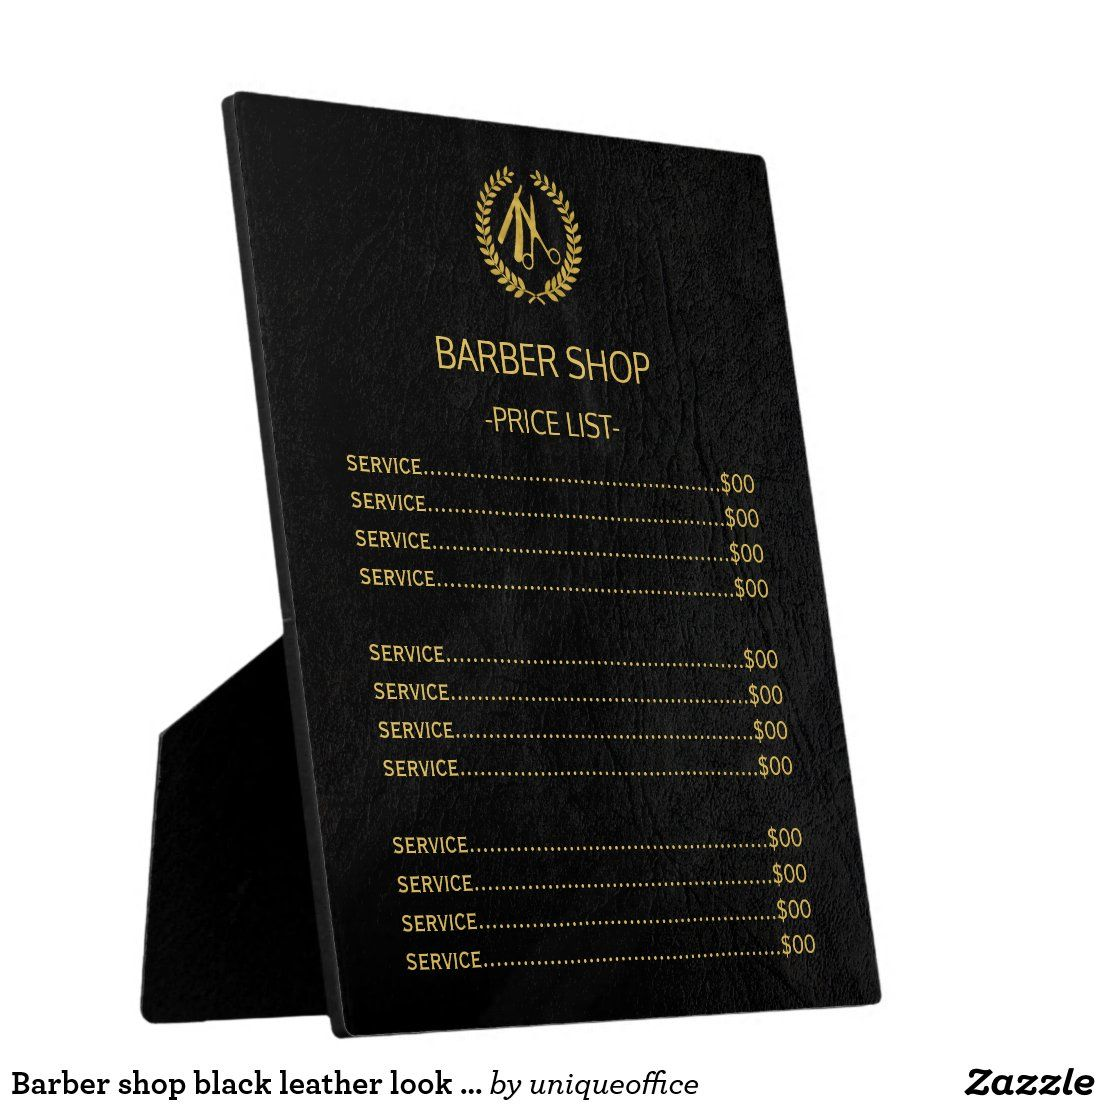 Luxury exclusive price list for a barber hairstylist shop in faux gold on a solid black classy elegant leather look background. Please note that the leather look is printed.